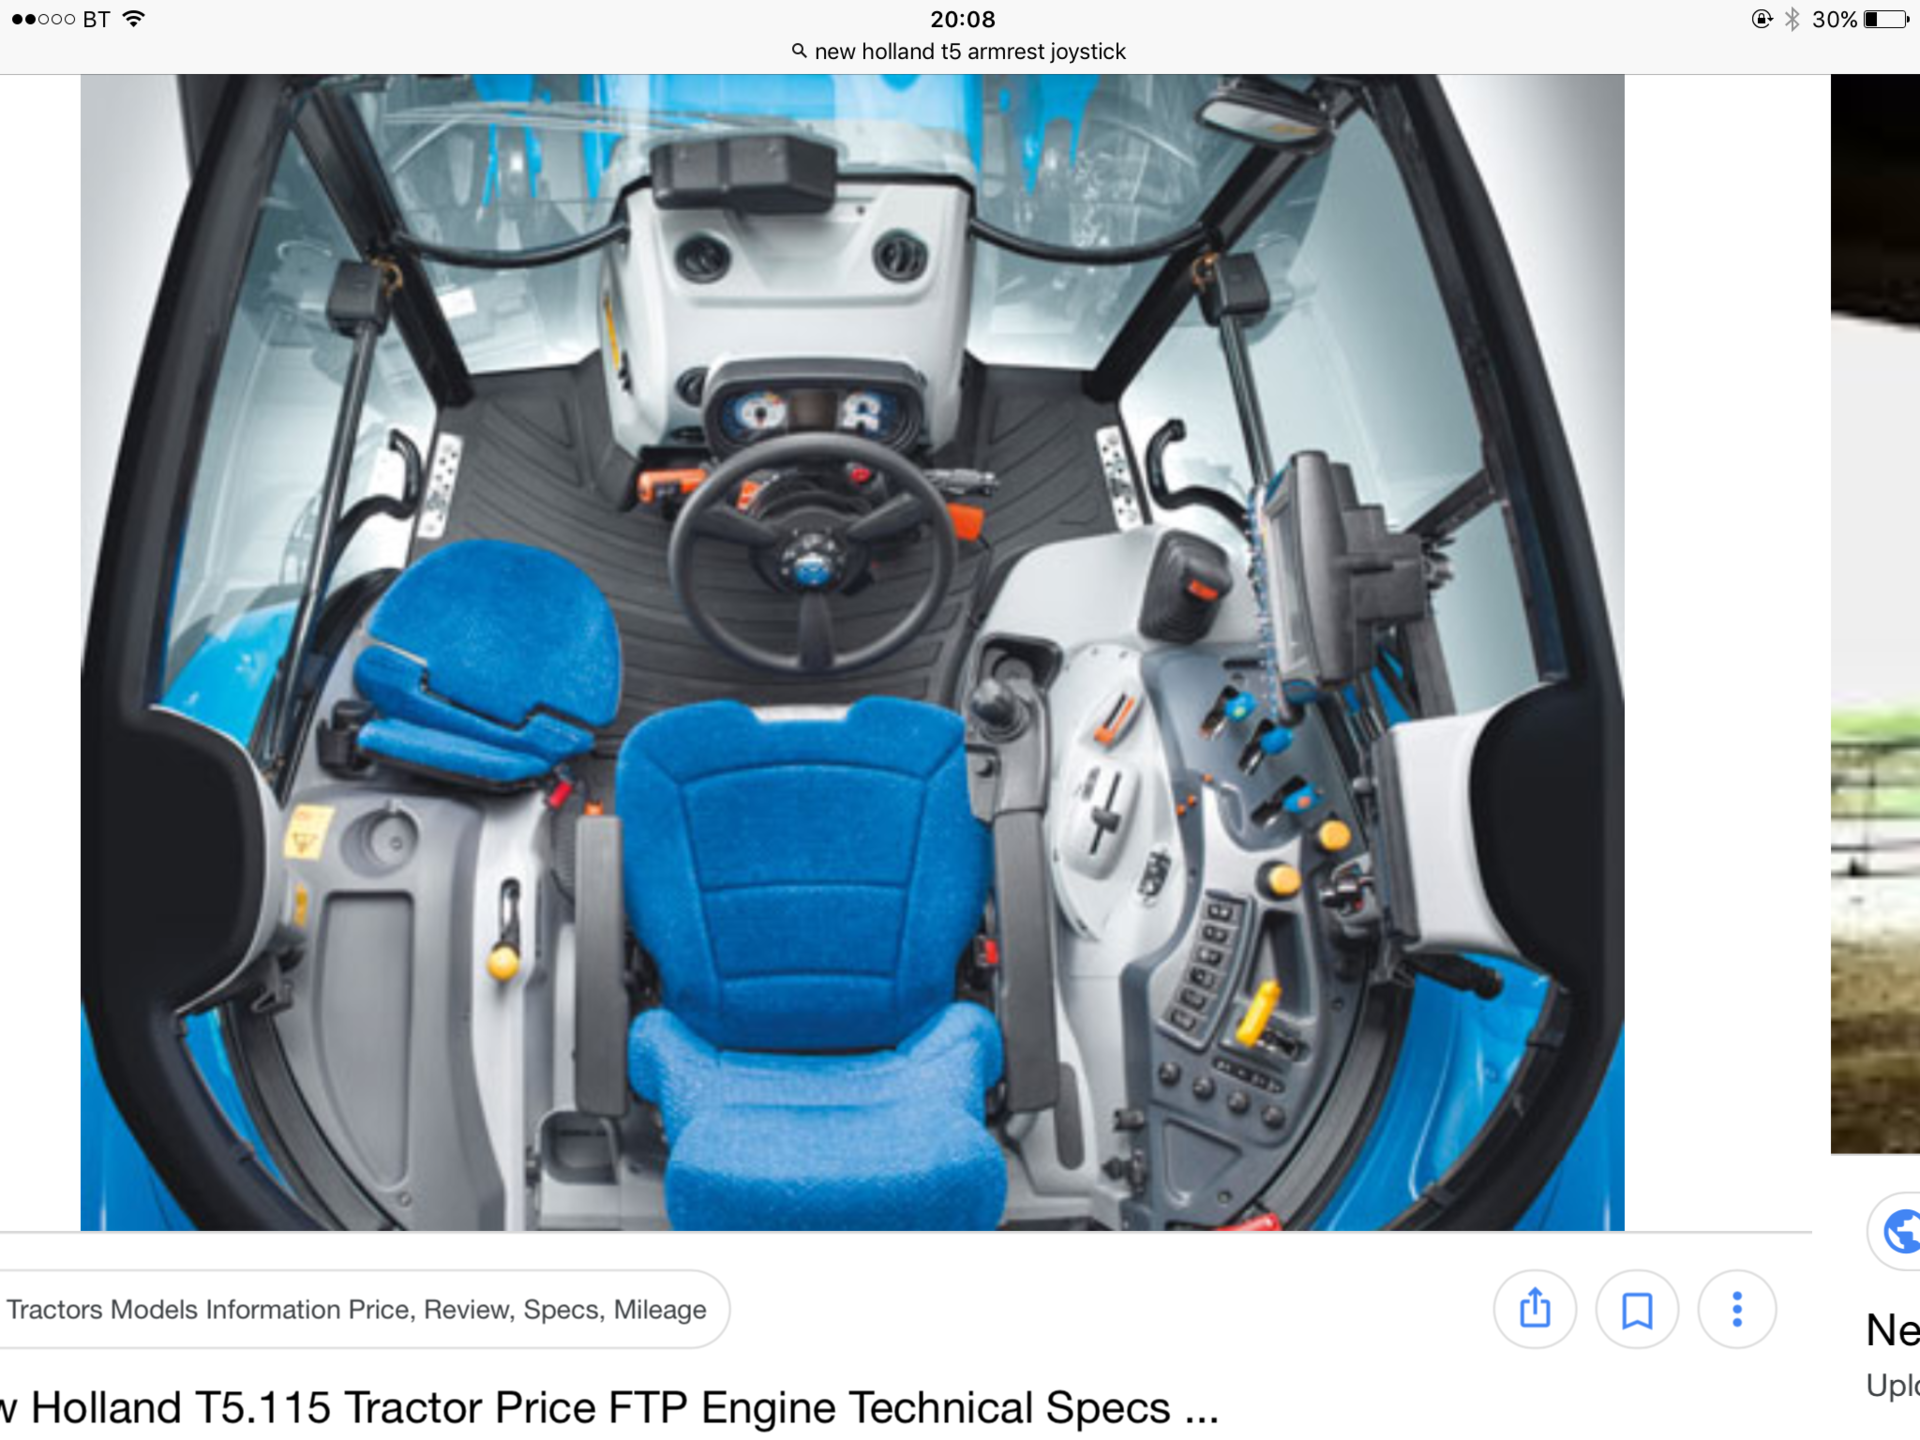 New holland electronic loader joystick | The Farming Forum